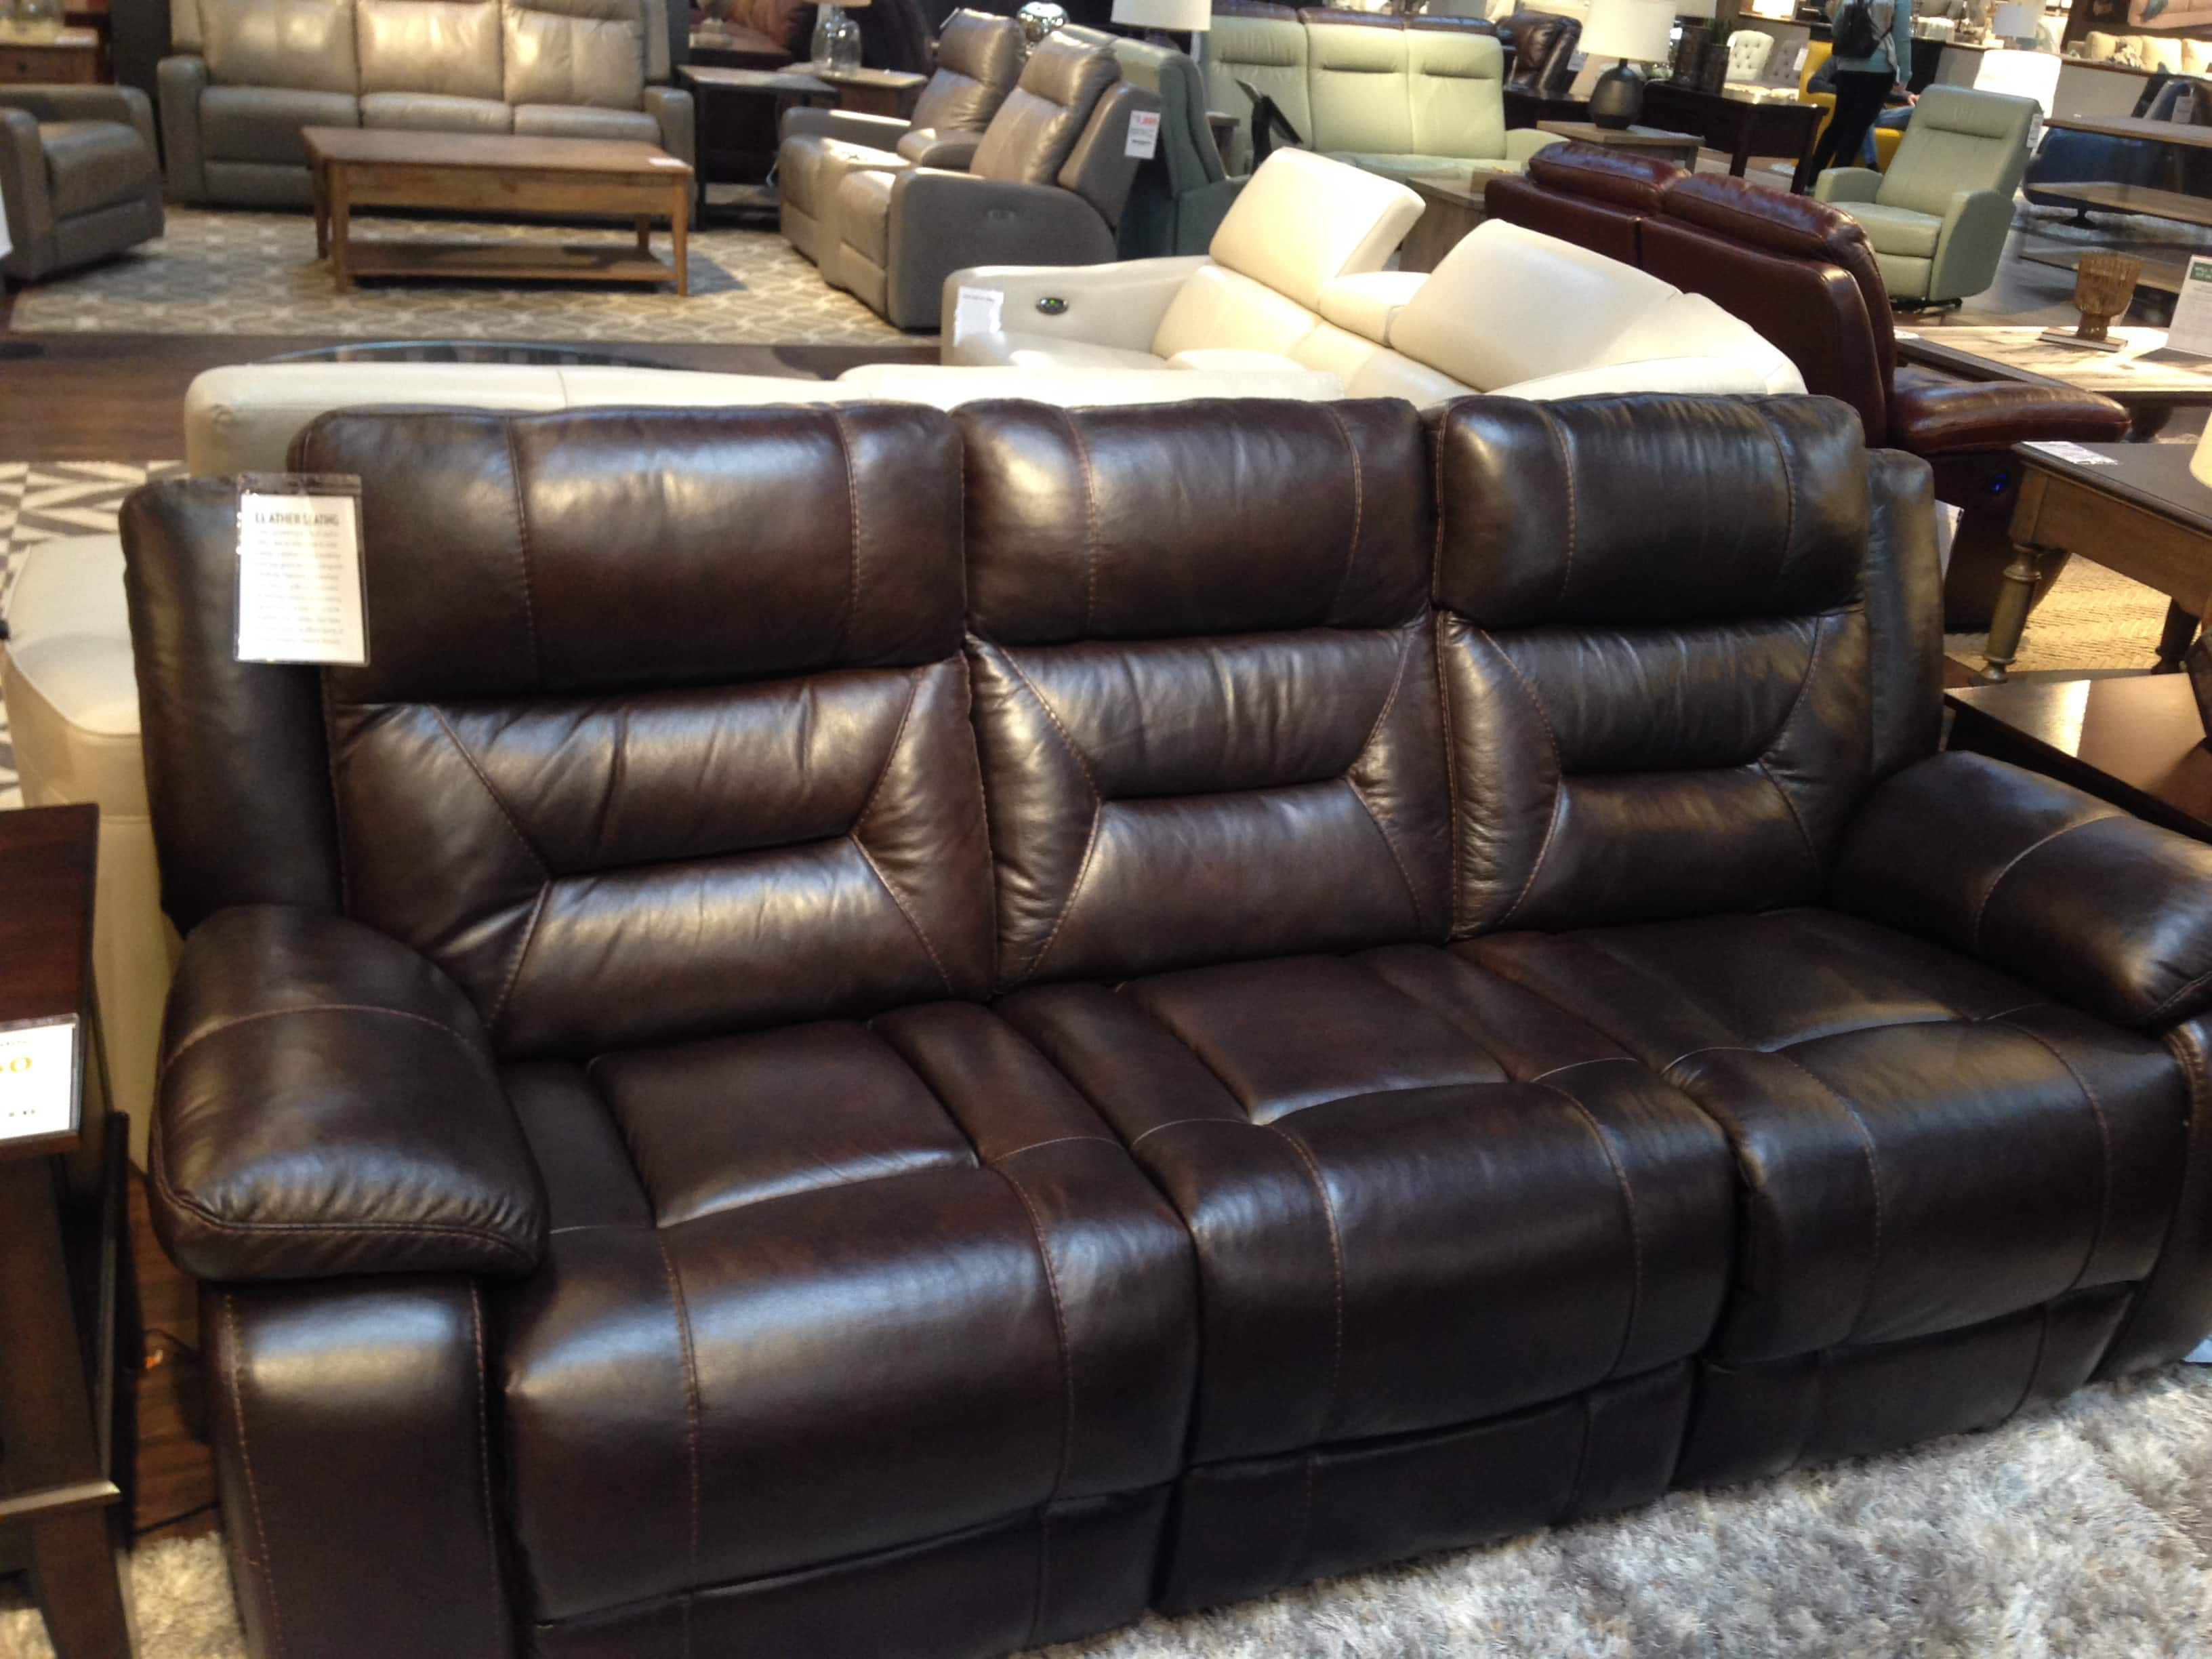 Etonnant Costco Pulaski Leather Sofa And Love Seat For $1500 Plus Tax